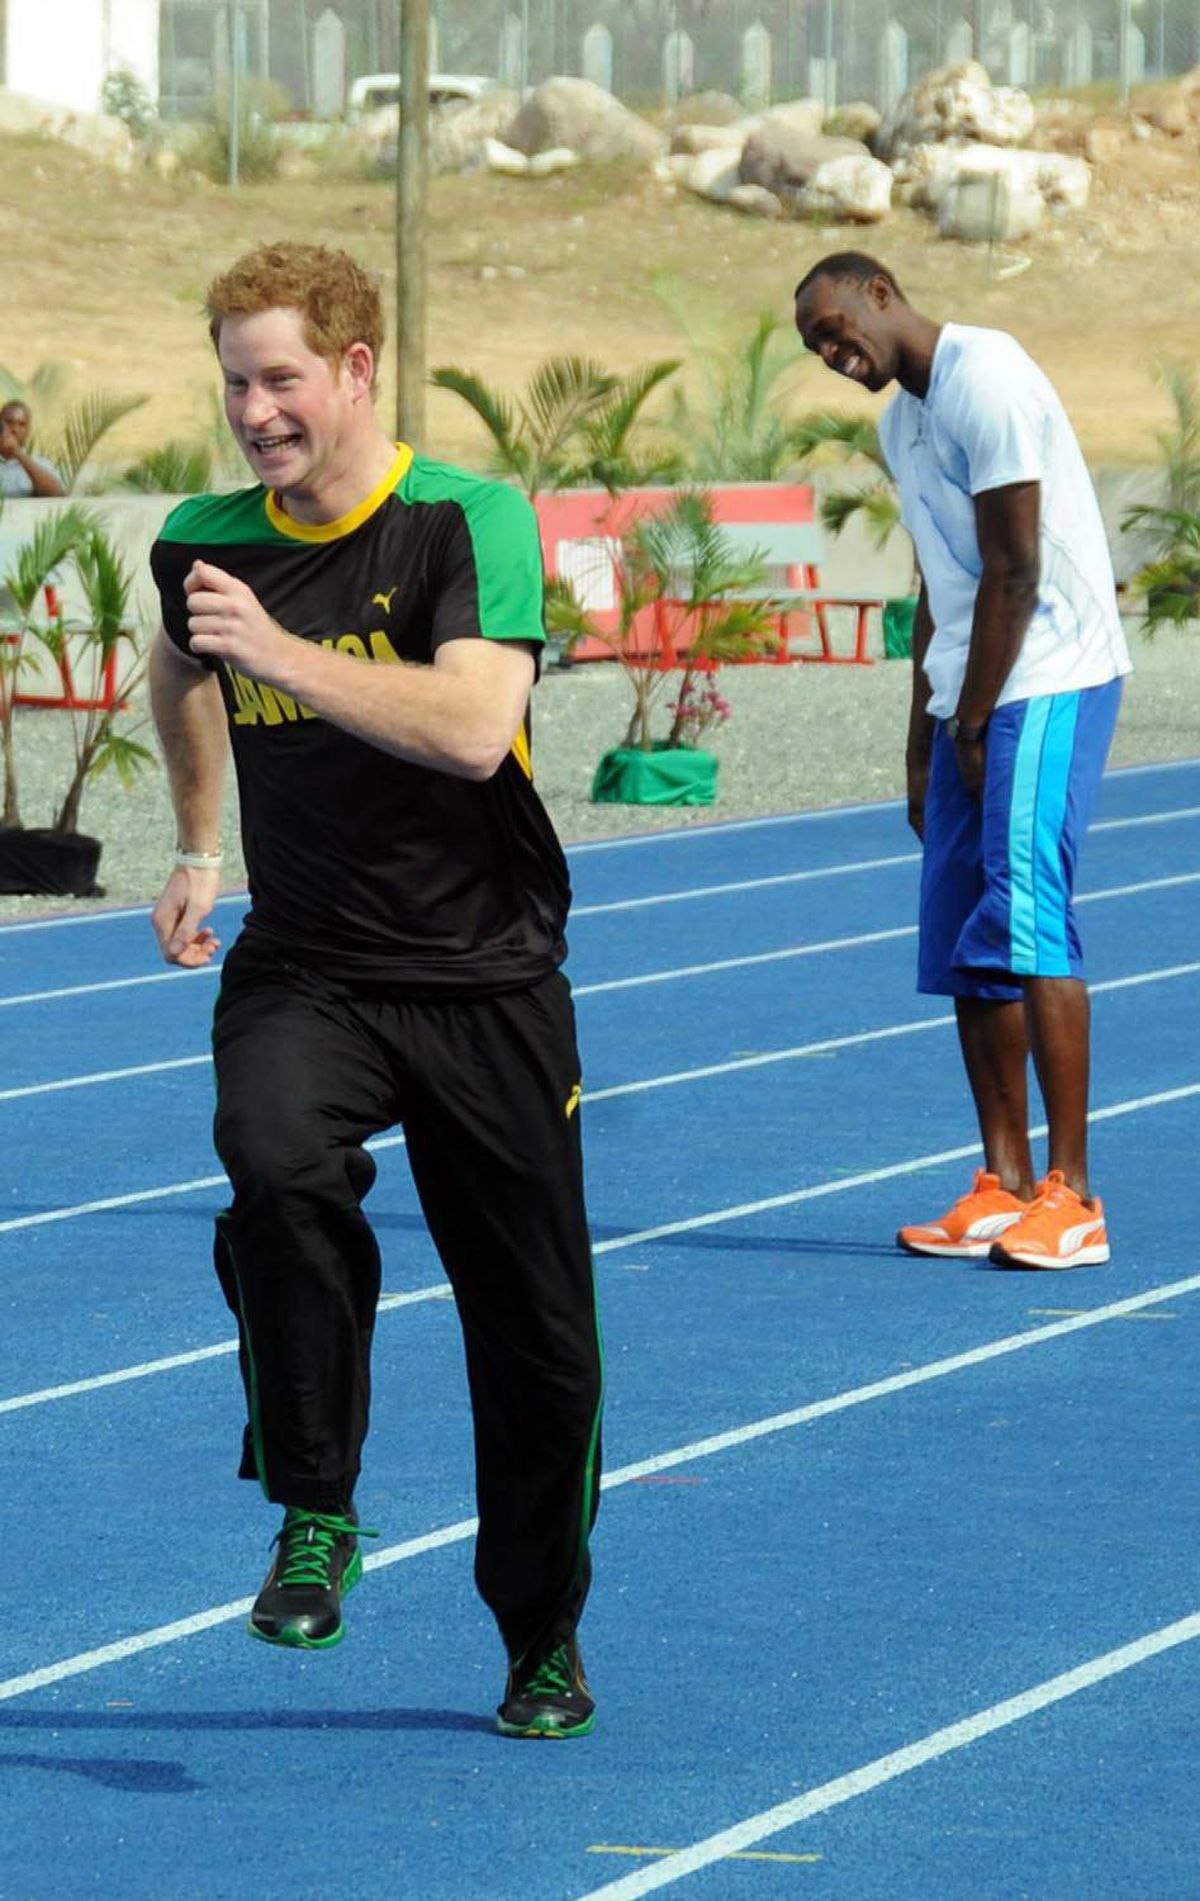 JOKER Britain's Prince Harry runs as Olympic sprint champion Usain Bolt laughs during a mock race in Kingston, Jamaica, Tuesday March 6, 2012.